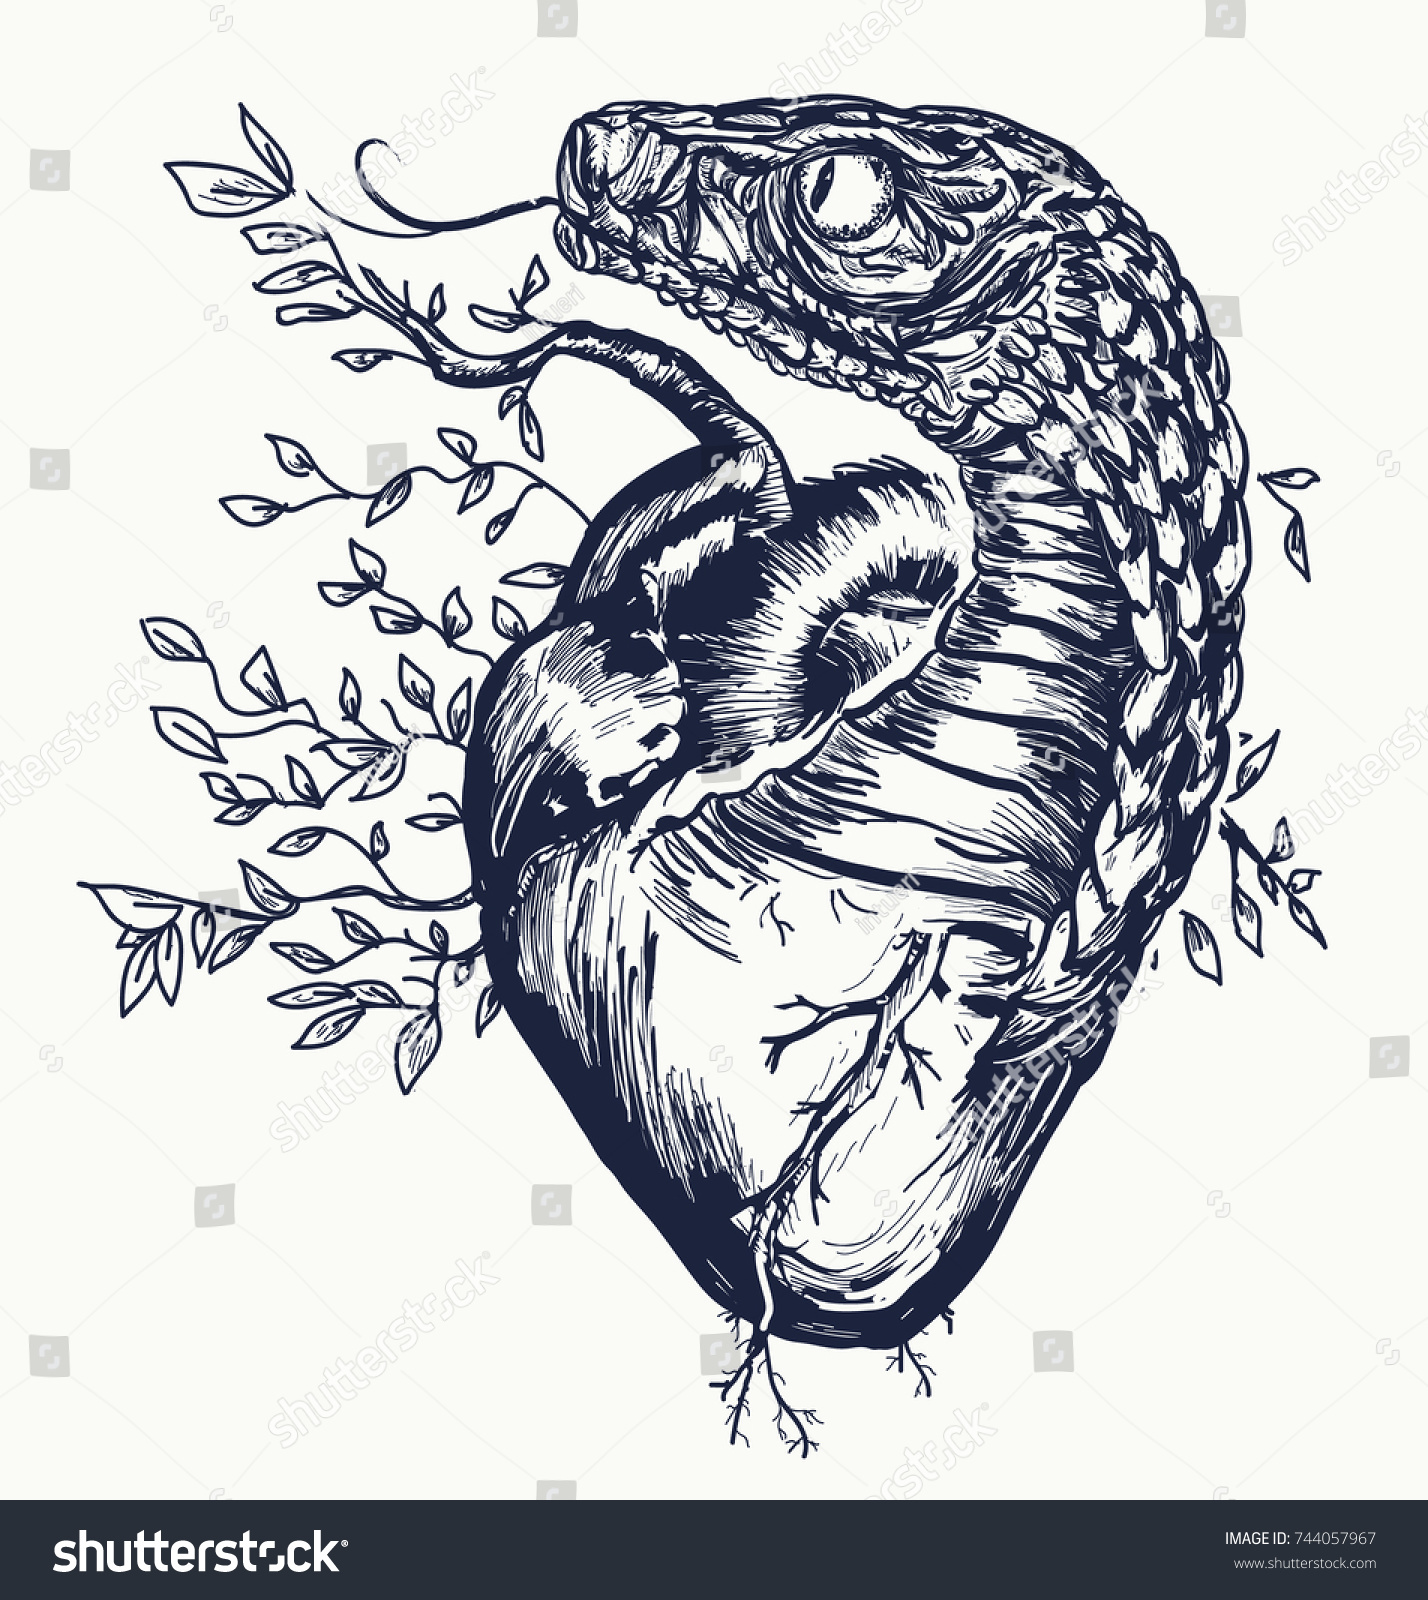 Success tattoo symbols images for tatouage success tattoo symbols inside snake heart tattoo symbol love envy stock vector 744057967 biocorpaavc Image collections